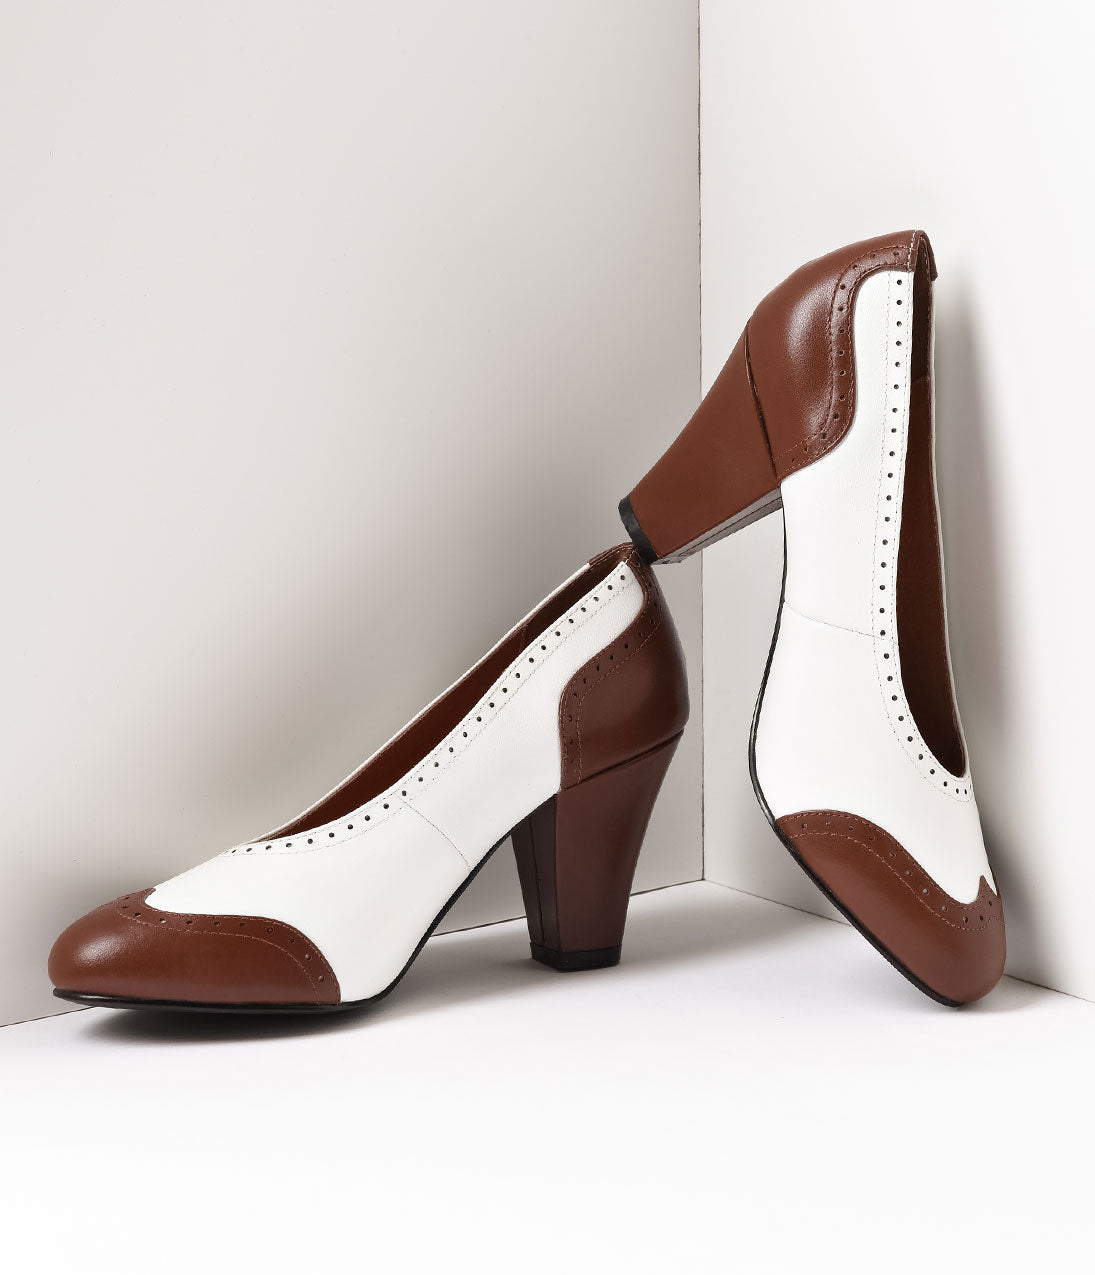 1940s Style Shoes, 40s Shoes Royal Vintage 1940S Style Brown  White Spectator Peggy Pumps $150.00 AT vintagedancer.com